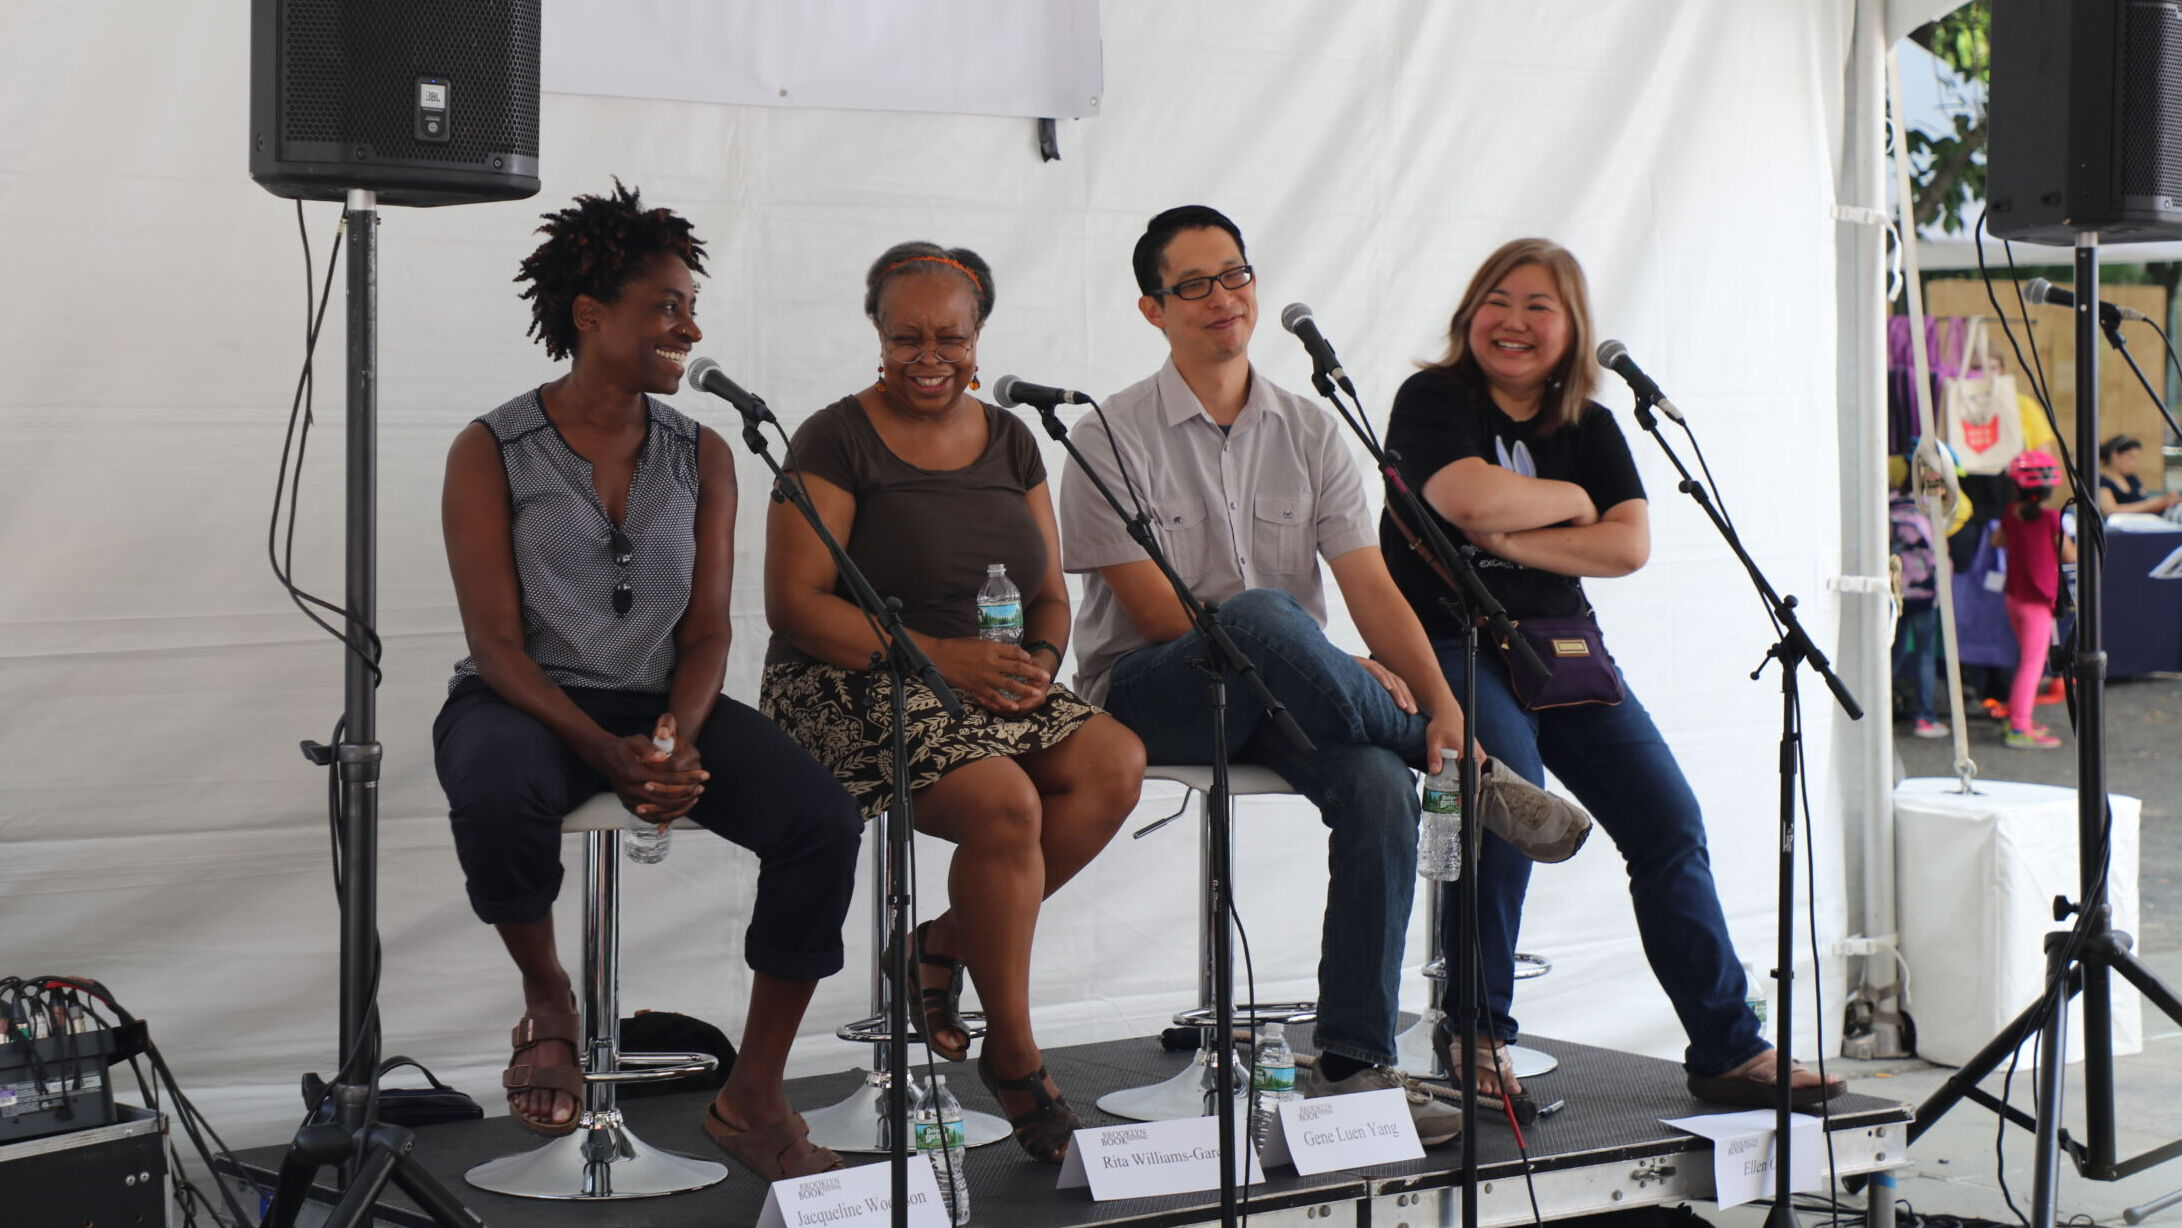 Four adults in casual dress sit on stools on a raised platform with white tent backdrop. Each has a standup microphone in front of their seat. They are all smiling as if sharing a laugh.